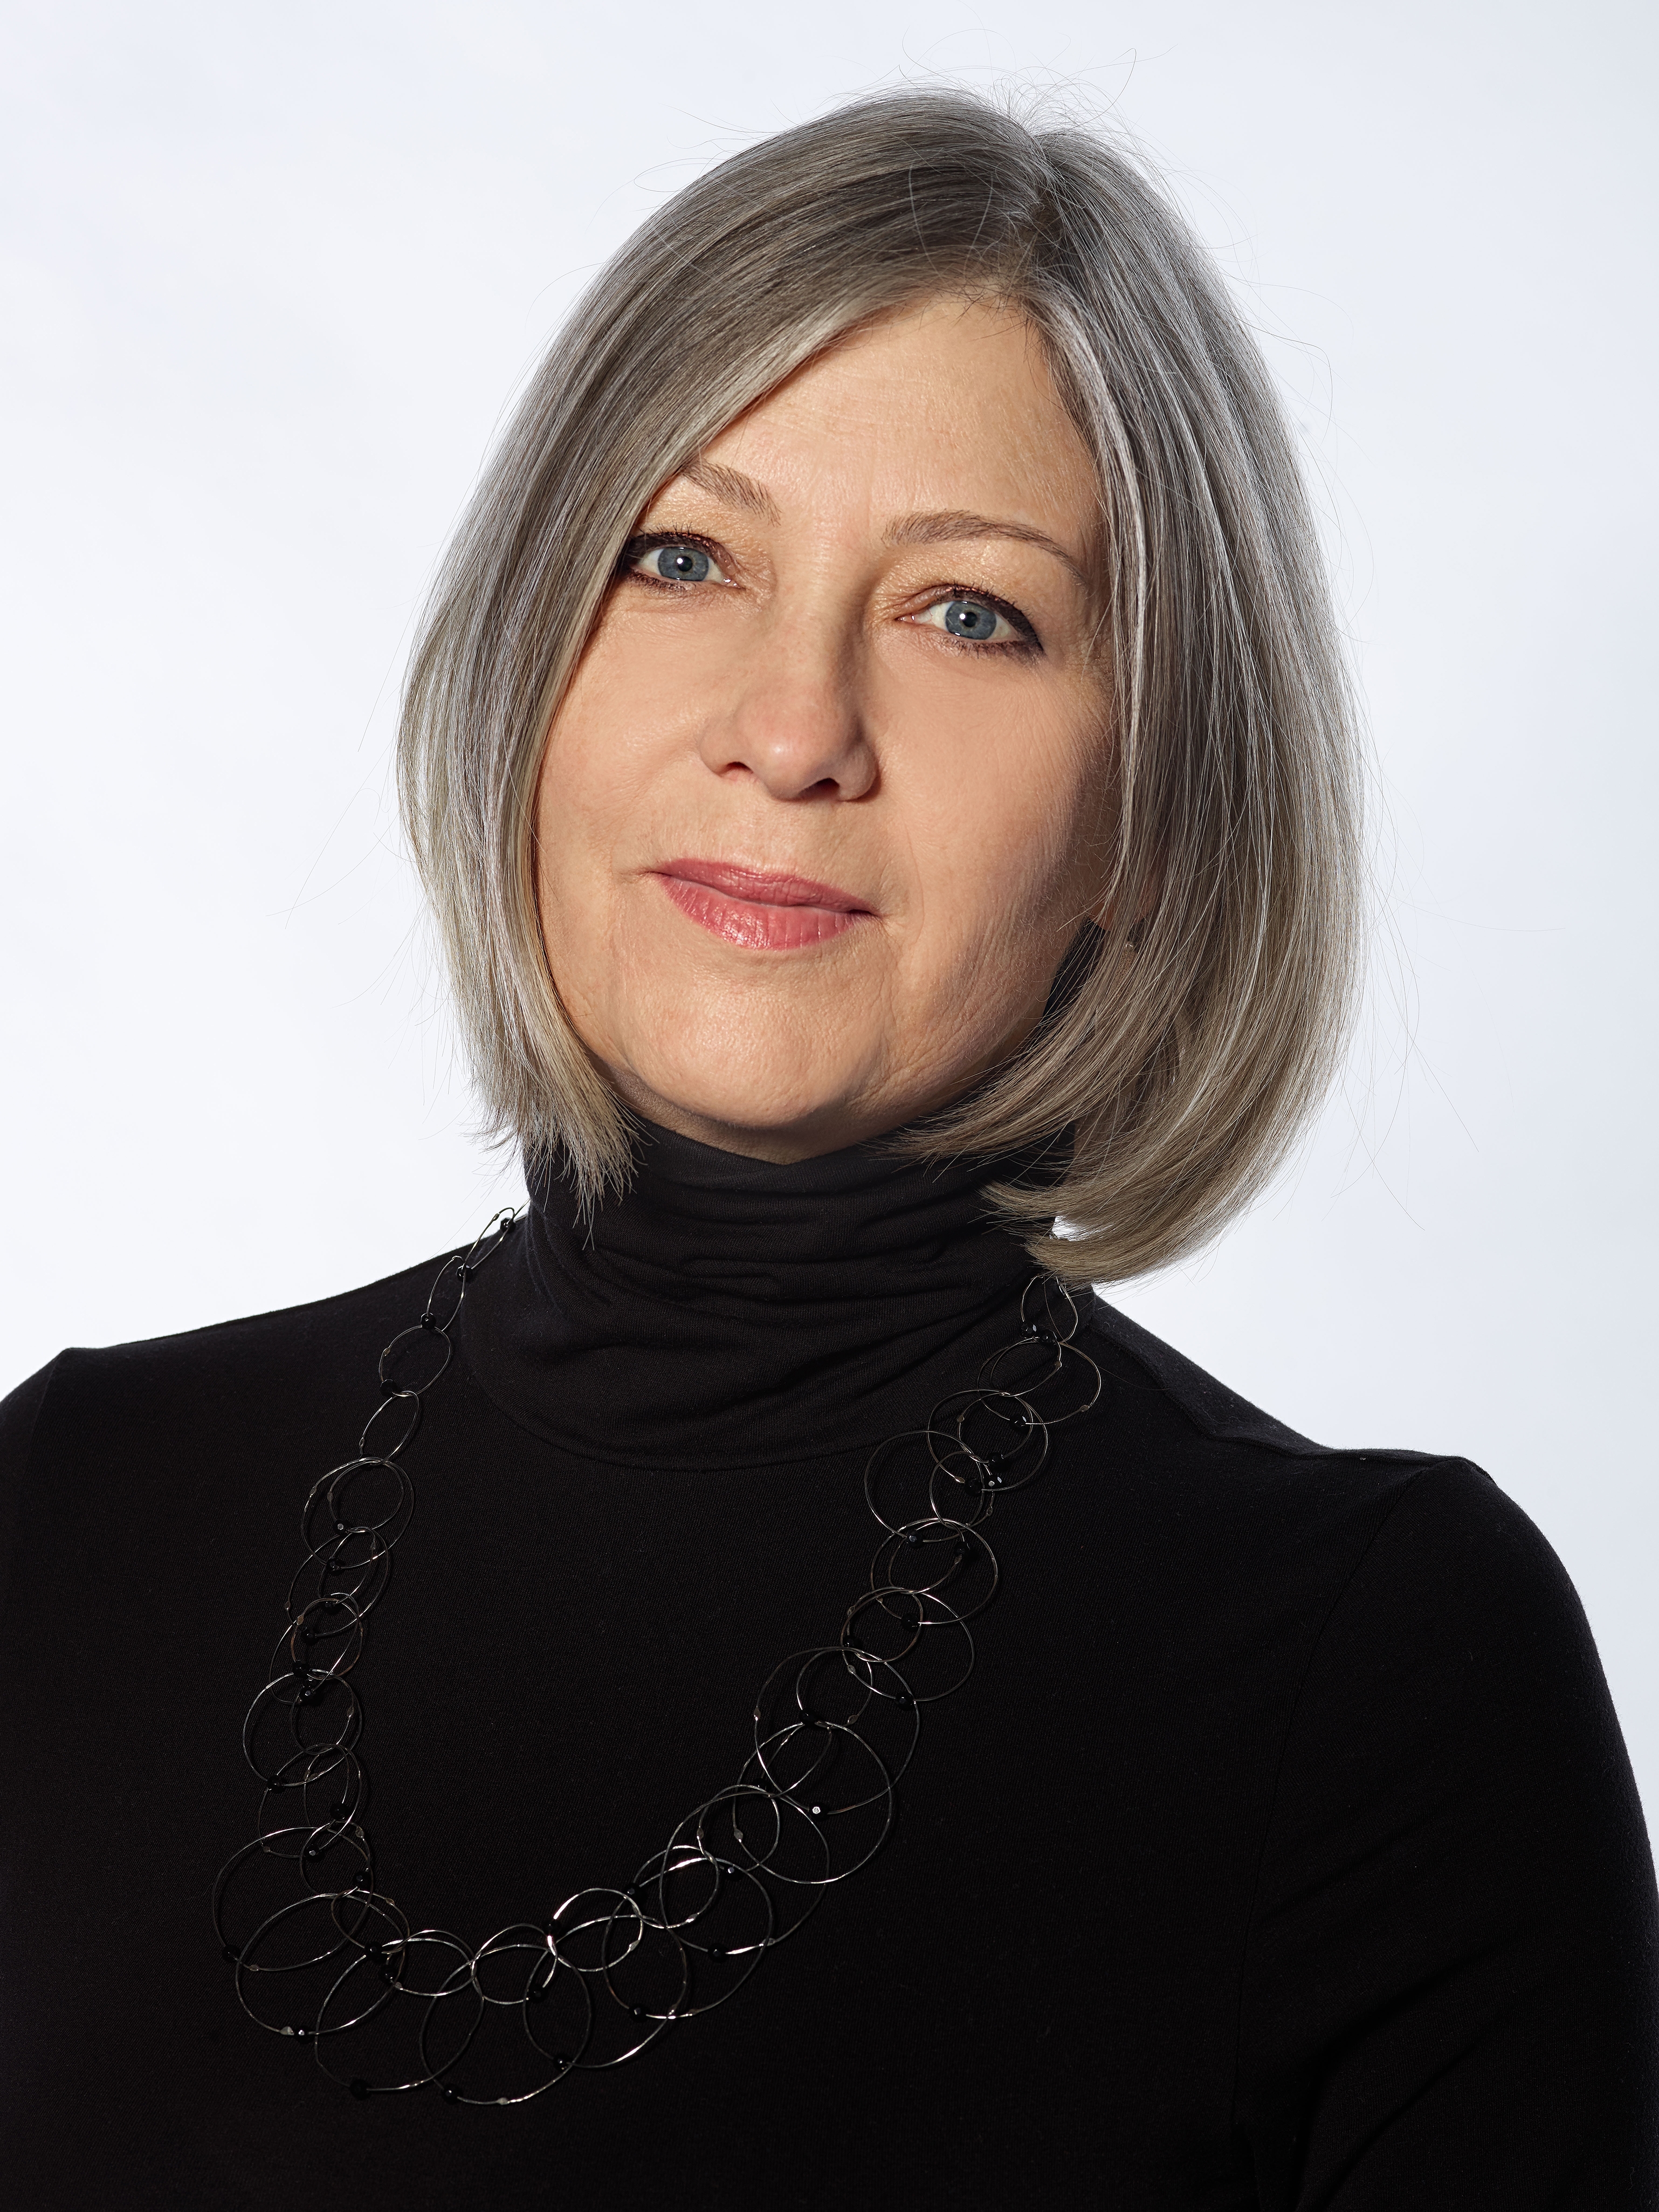 A headshot of a woman with silver hair in a black turtleneck